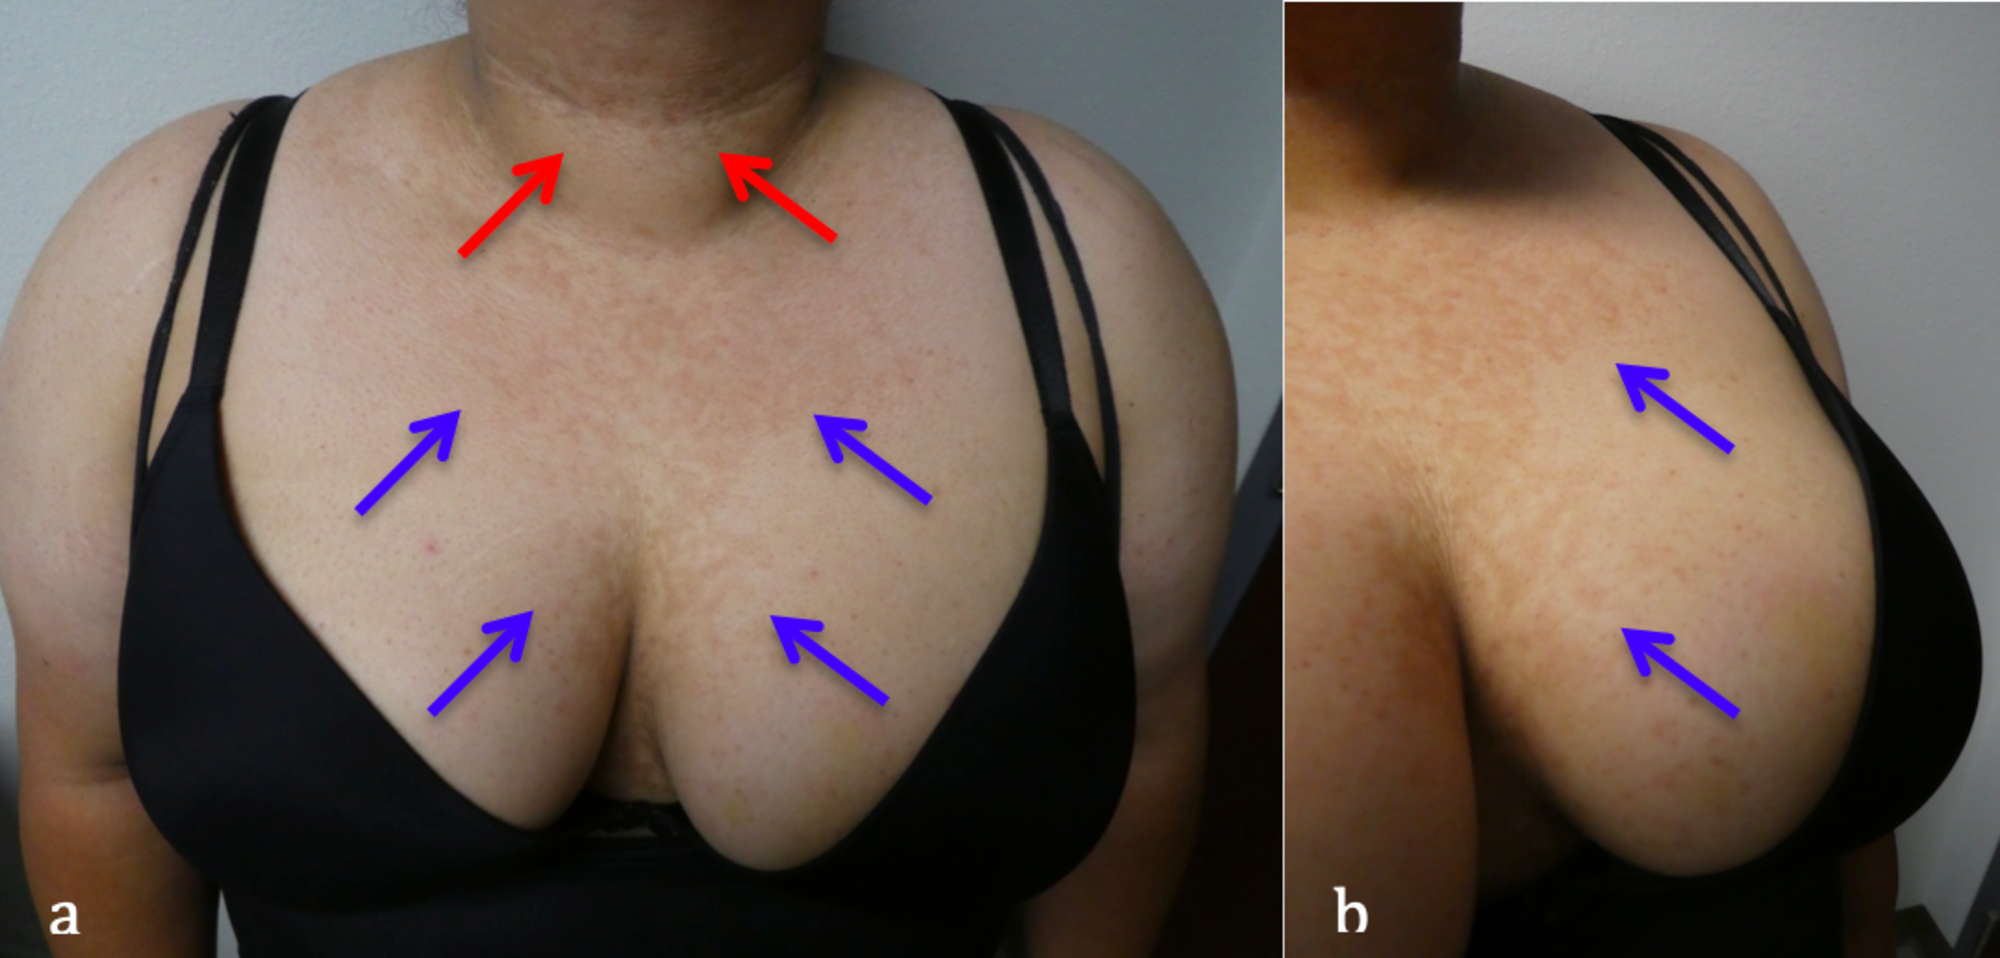 confluent and reticulated papillomatosis weight loss